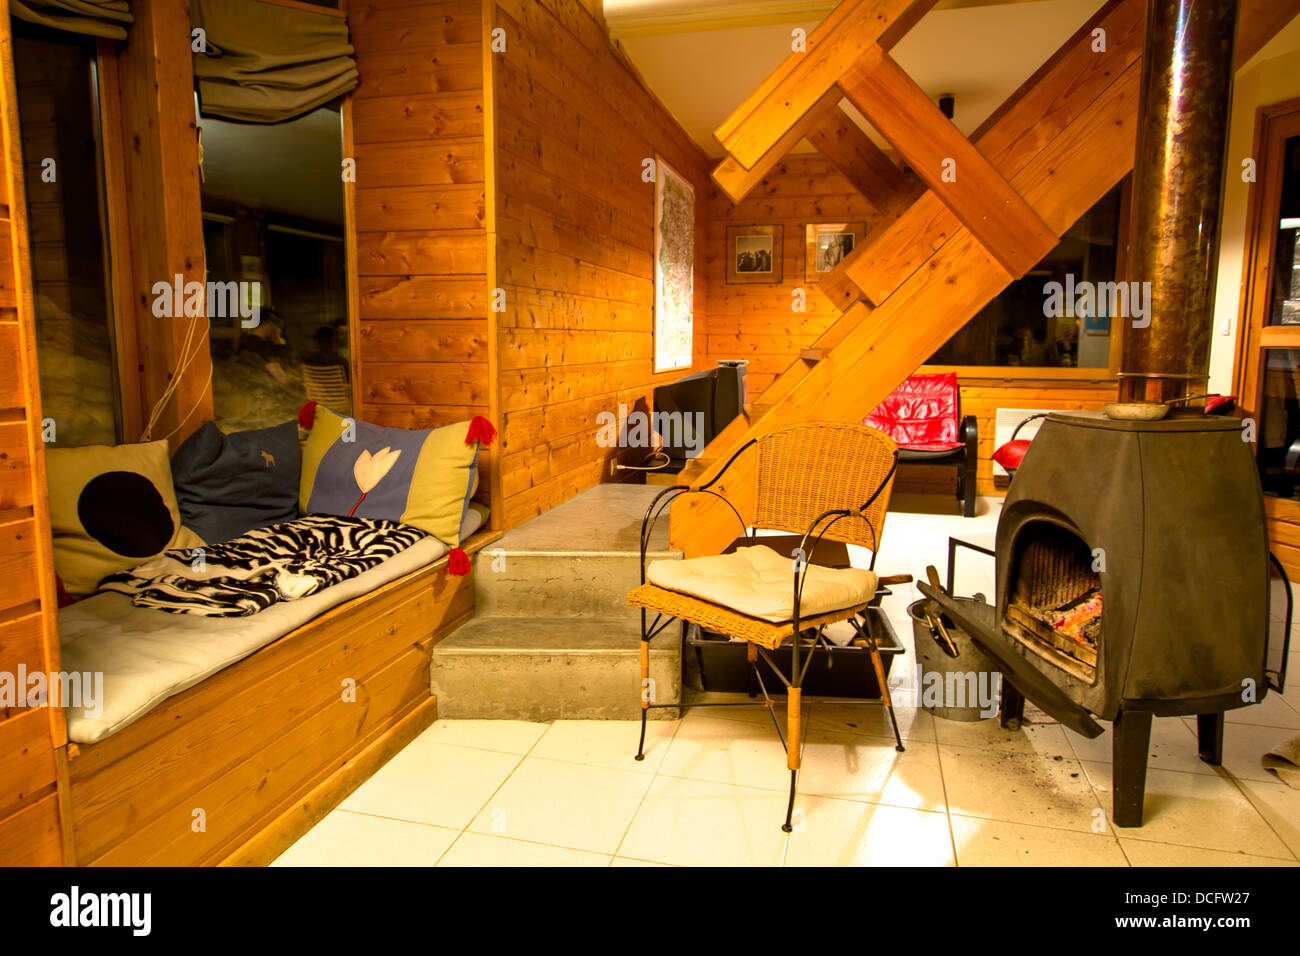 Ski Chalet Interior Design the interior design of the french ski chalet in alps stock